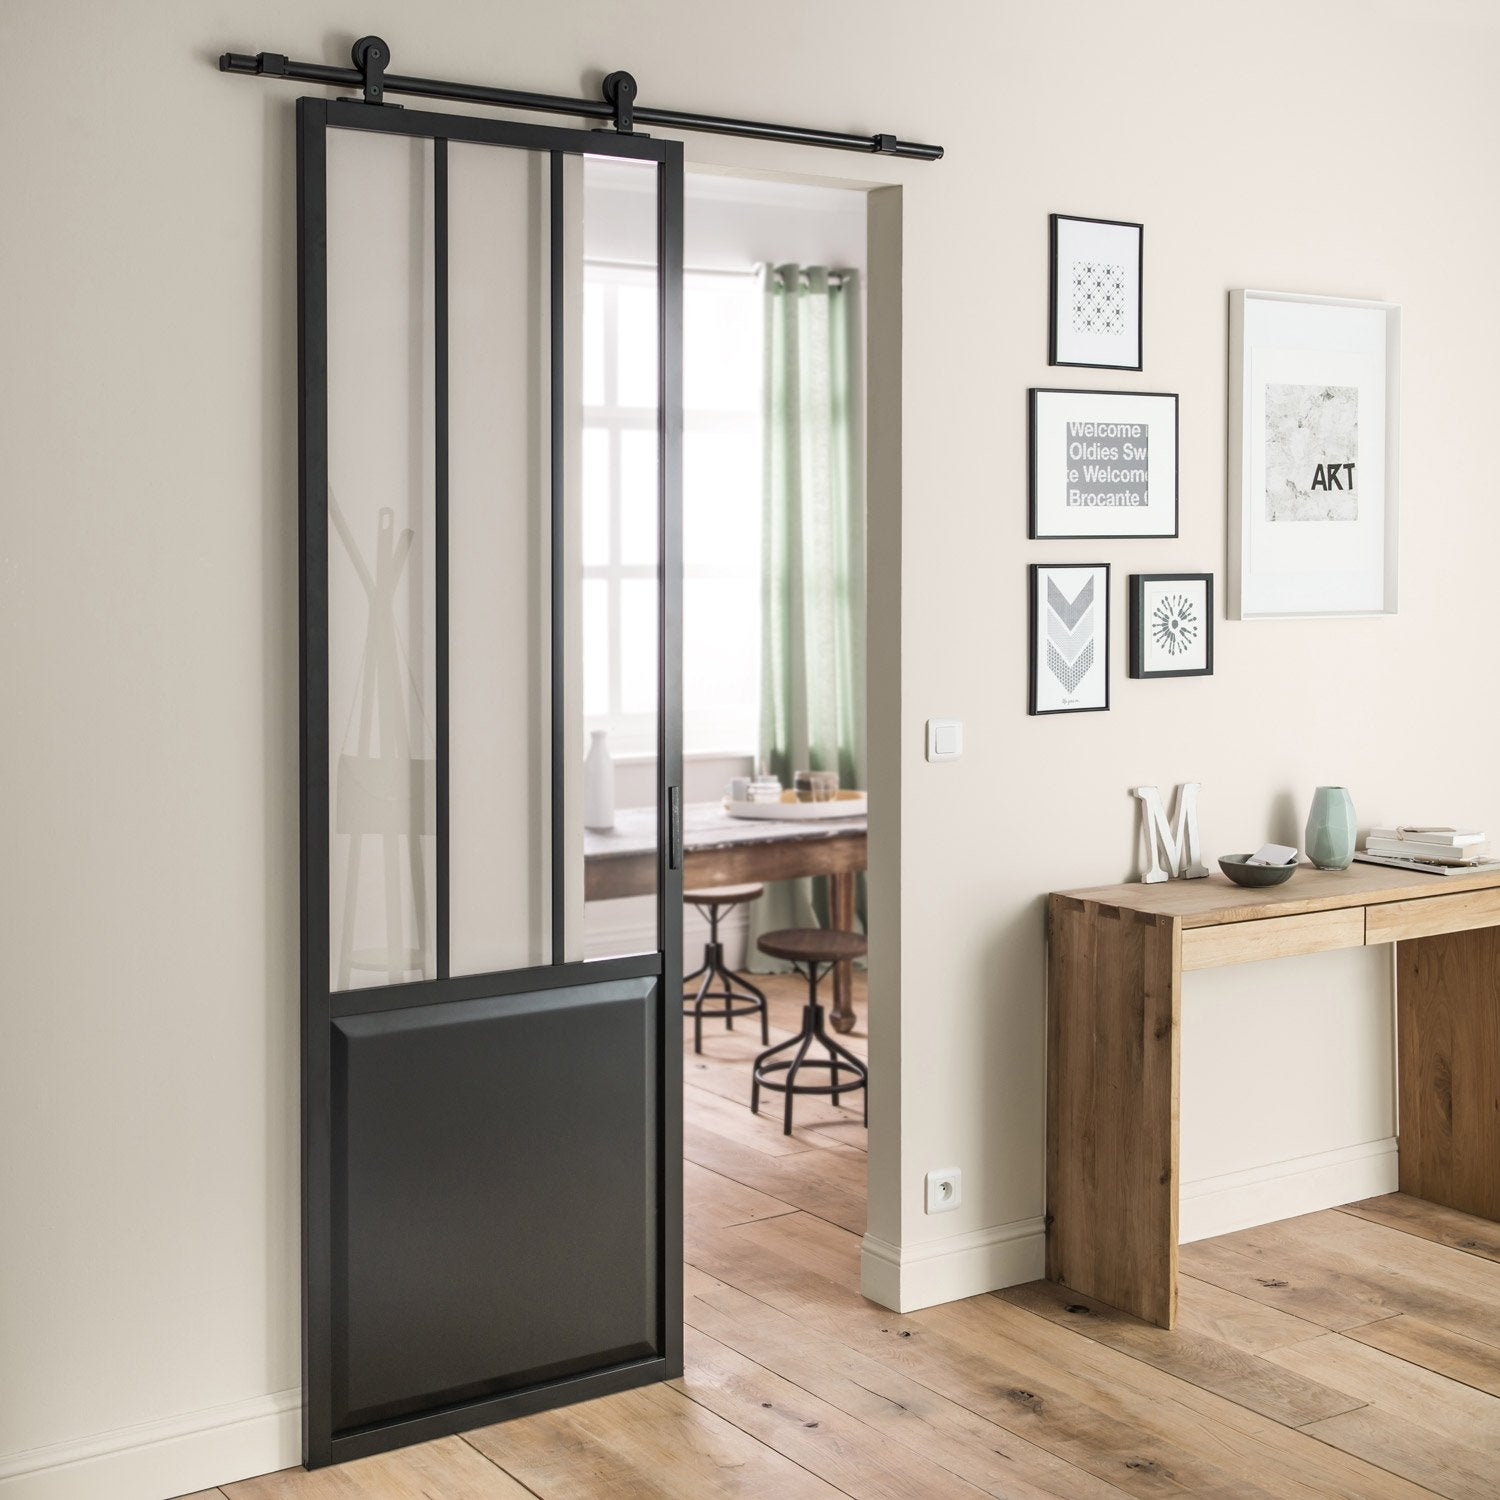 Ensemble porte coulissante atelier mdf rev tu avec le rail for Porte coulissante suspendu